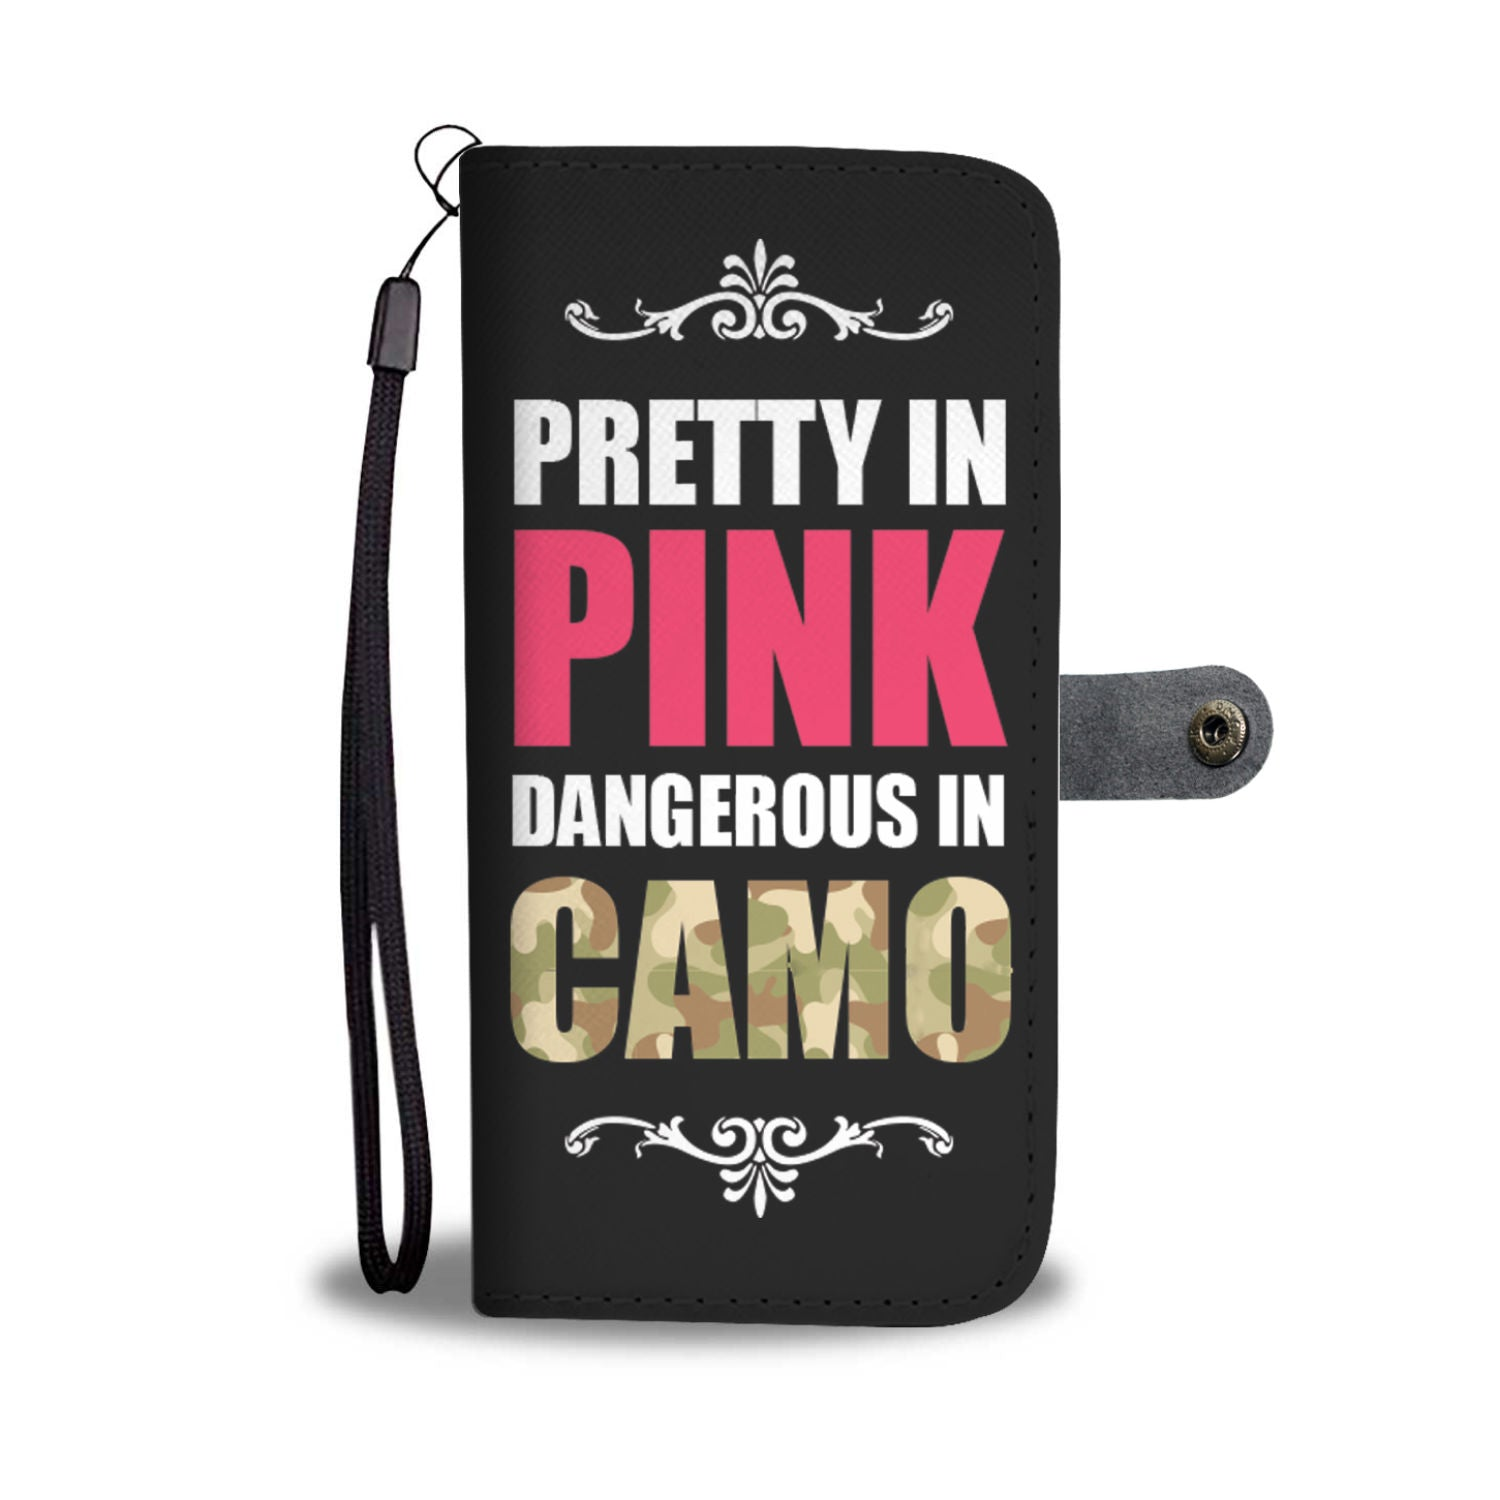 Pretty In Pink Dangerous in Camo RFID Wallet Phone Case